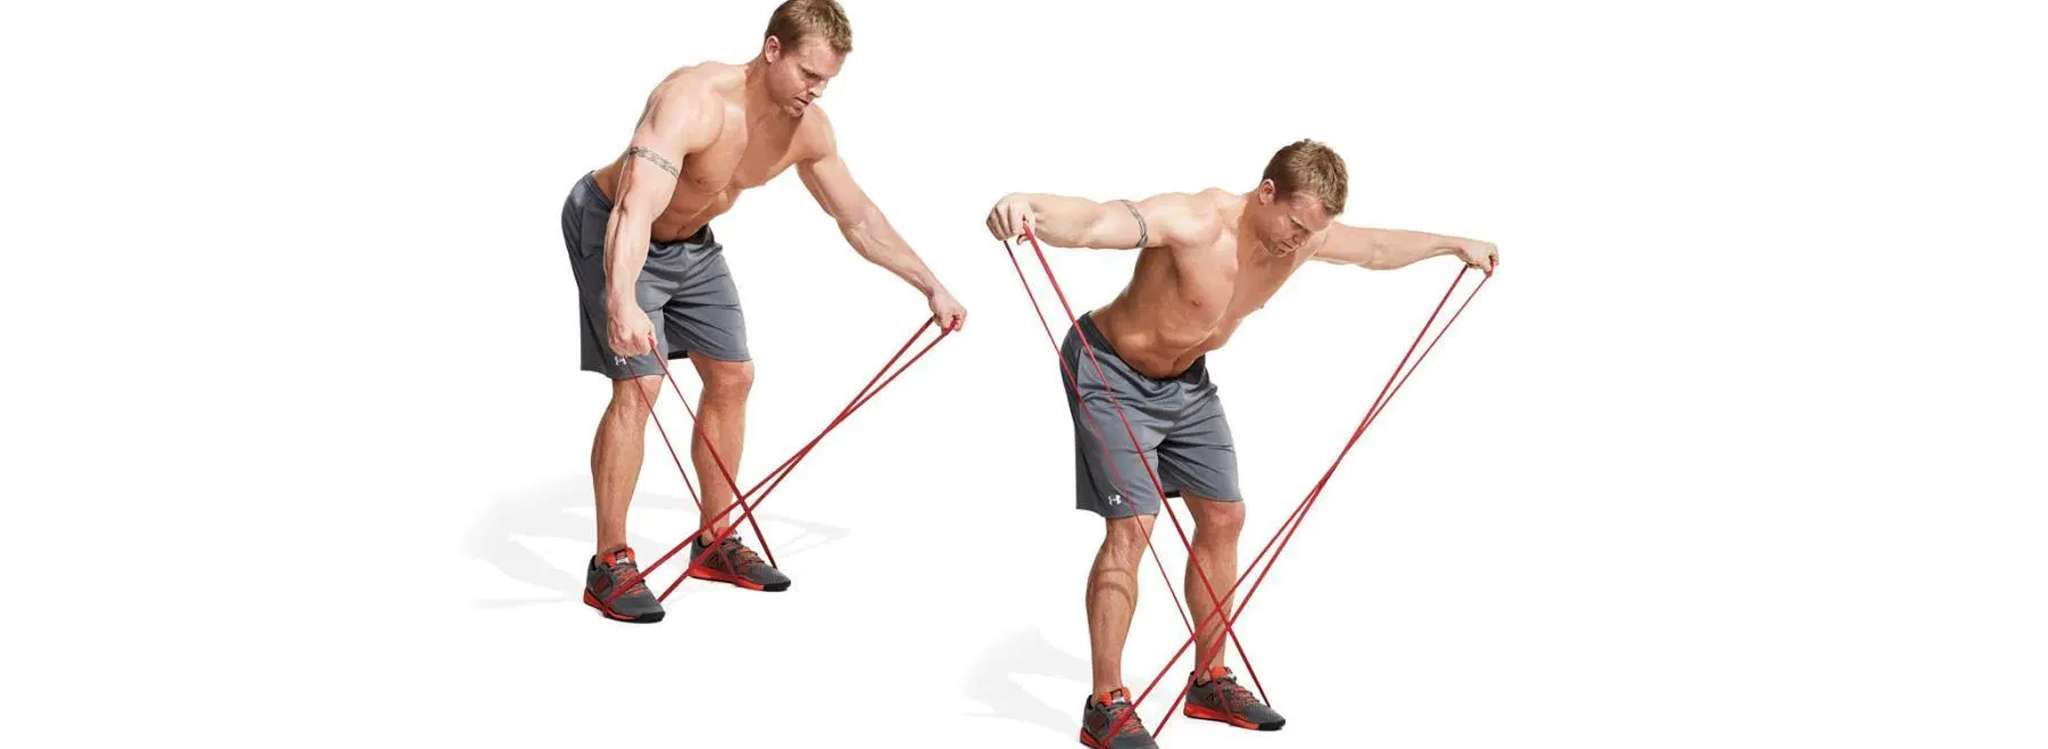 30 bai tap co vai truoc va tap co vai sau tot nhat moi thoi dai Band Bent-Over Lateral Raise